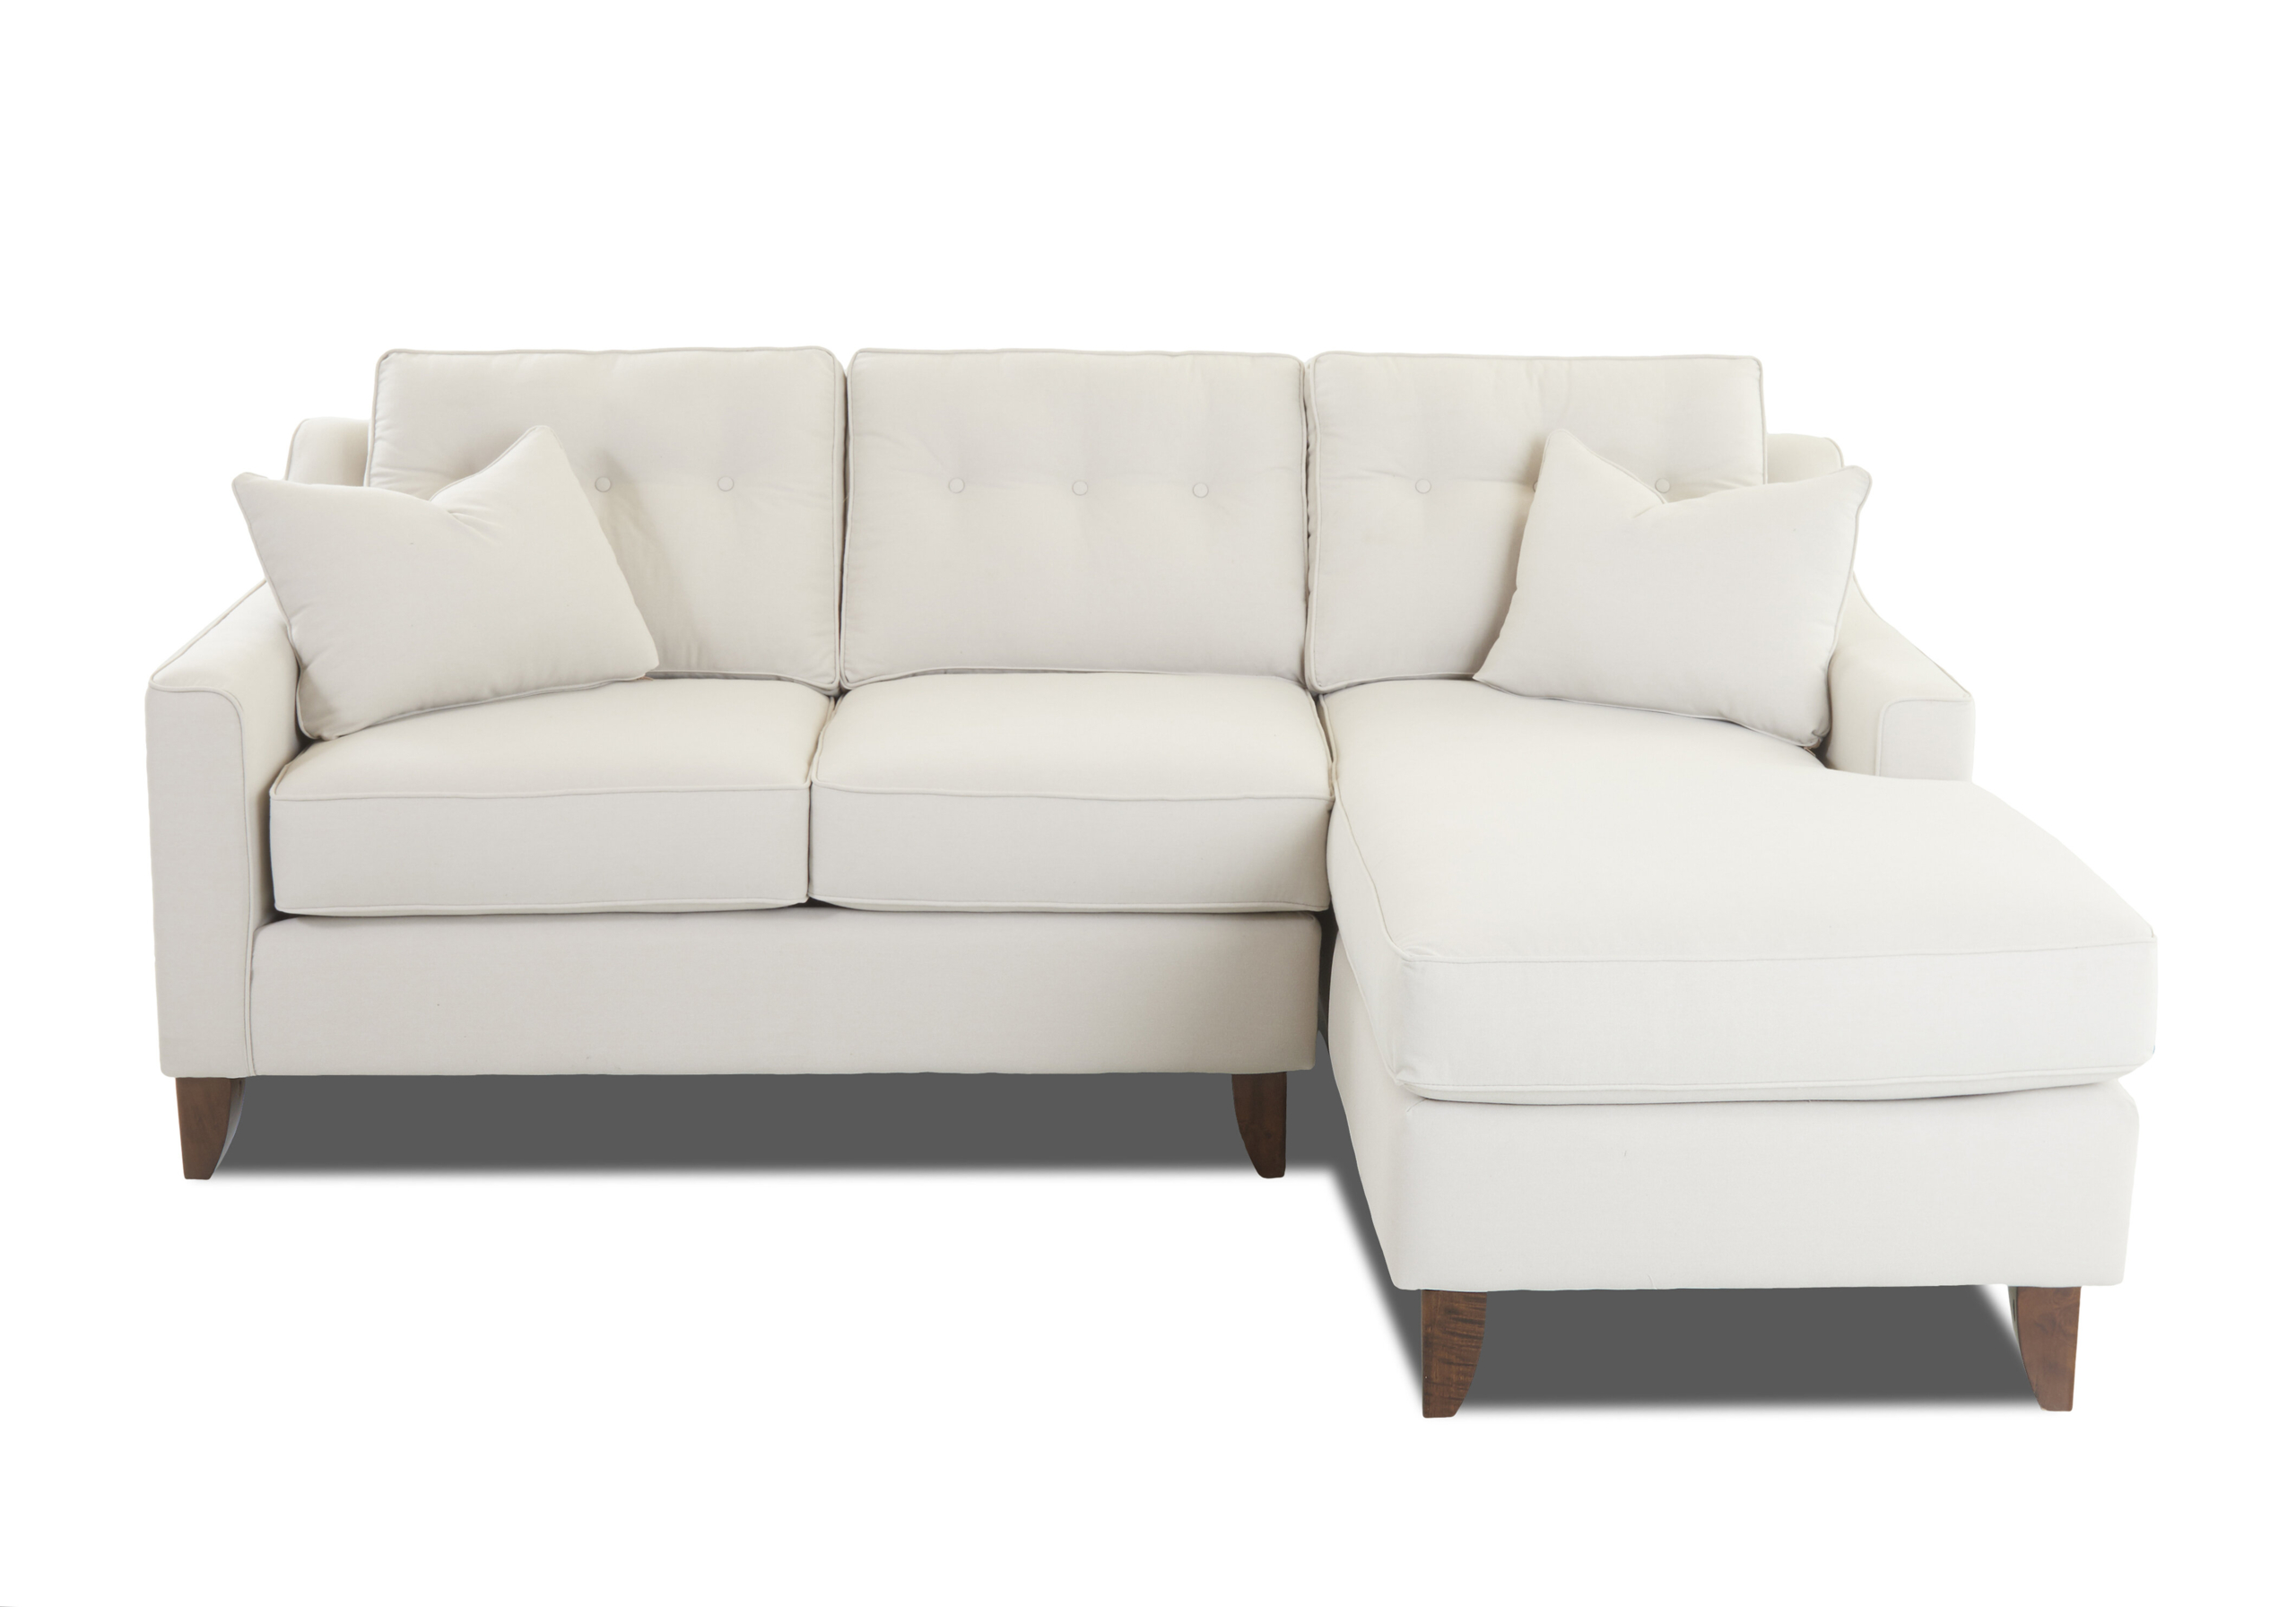 very small sectional sofa ideas on foter rh foter com Deep Plush Sectional Sofas Deep Sectional Sofa